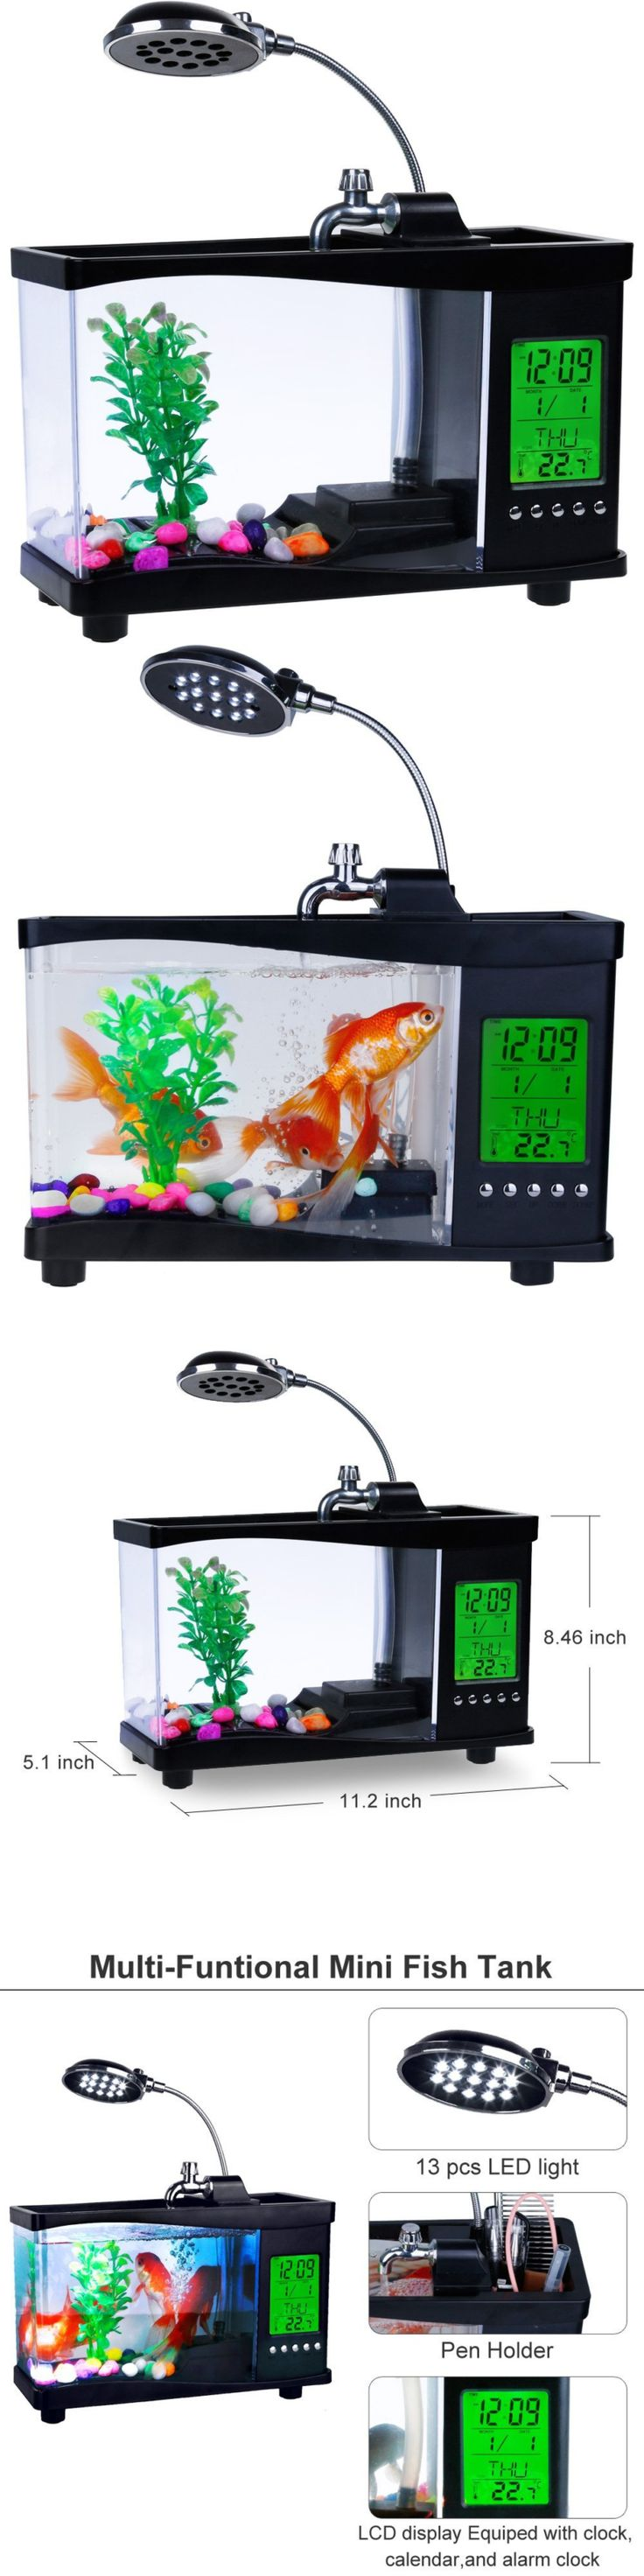 Freshwater Aquarium Fish Under 1 Inch - Aquariums and tanks 20755 zacro usb mini fish tank 0 33 gallon aquarium kit